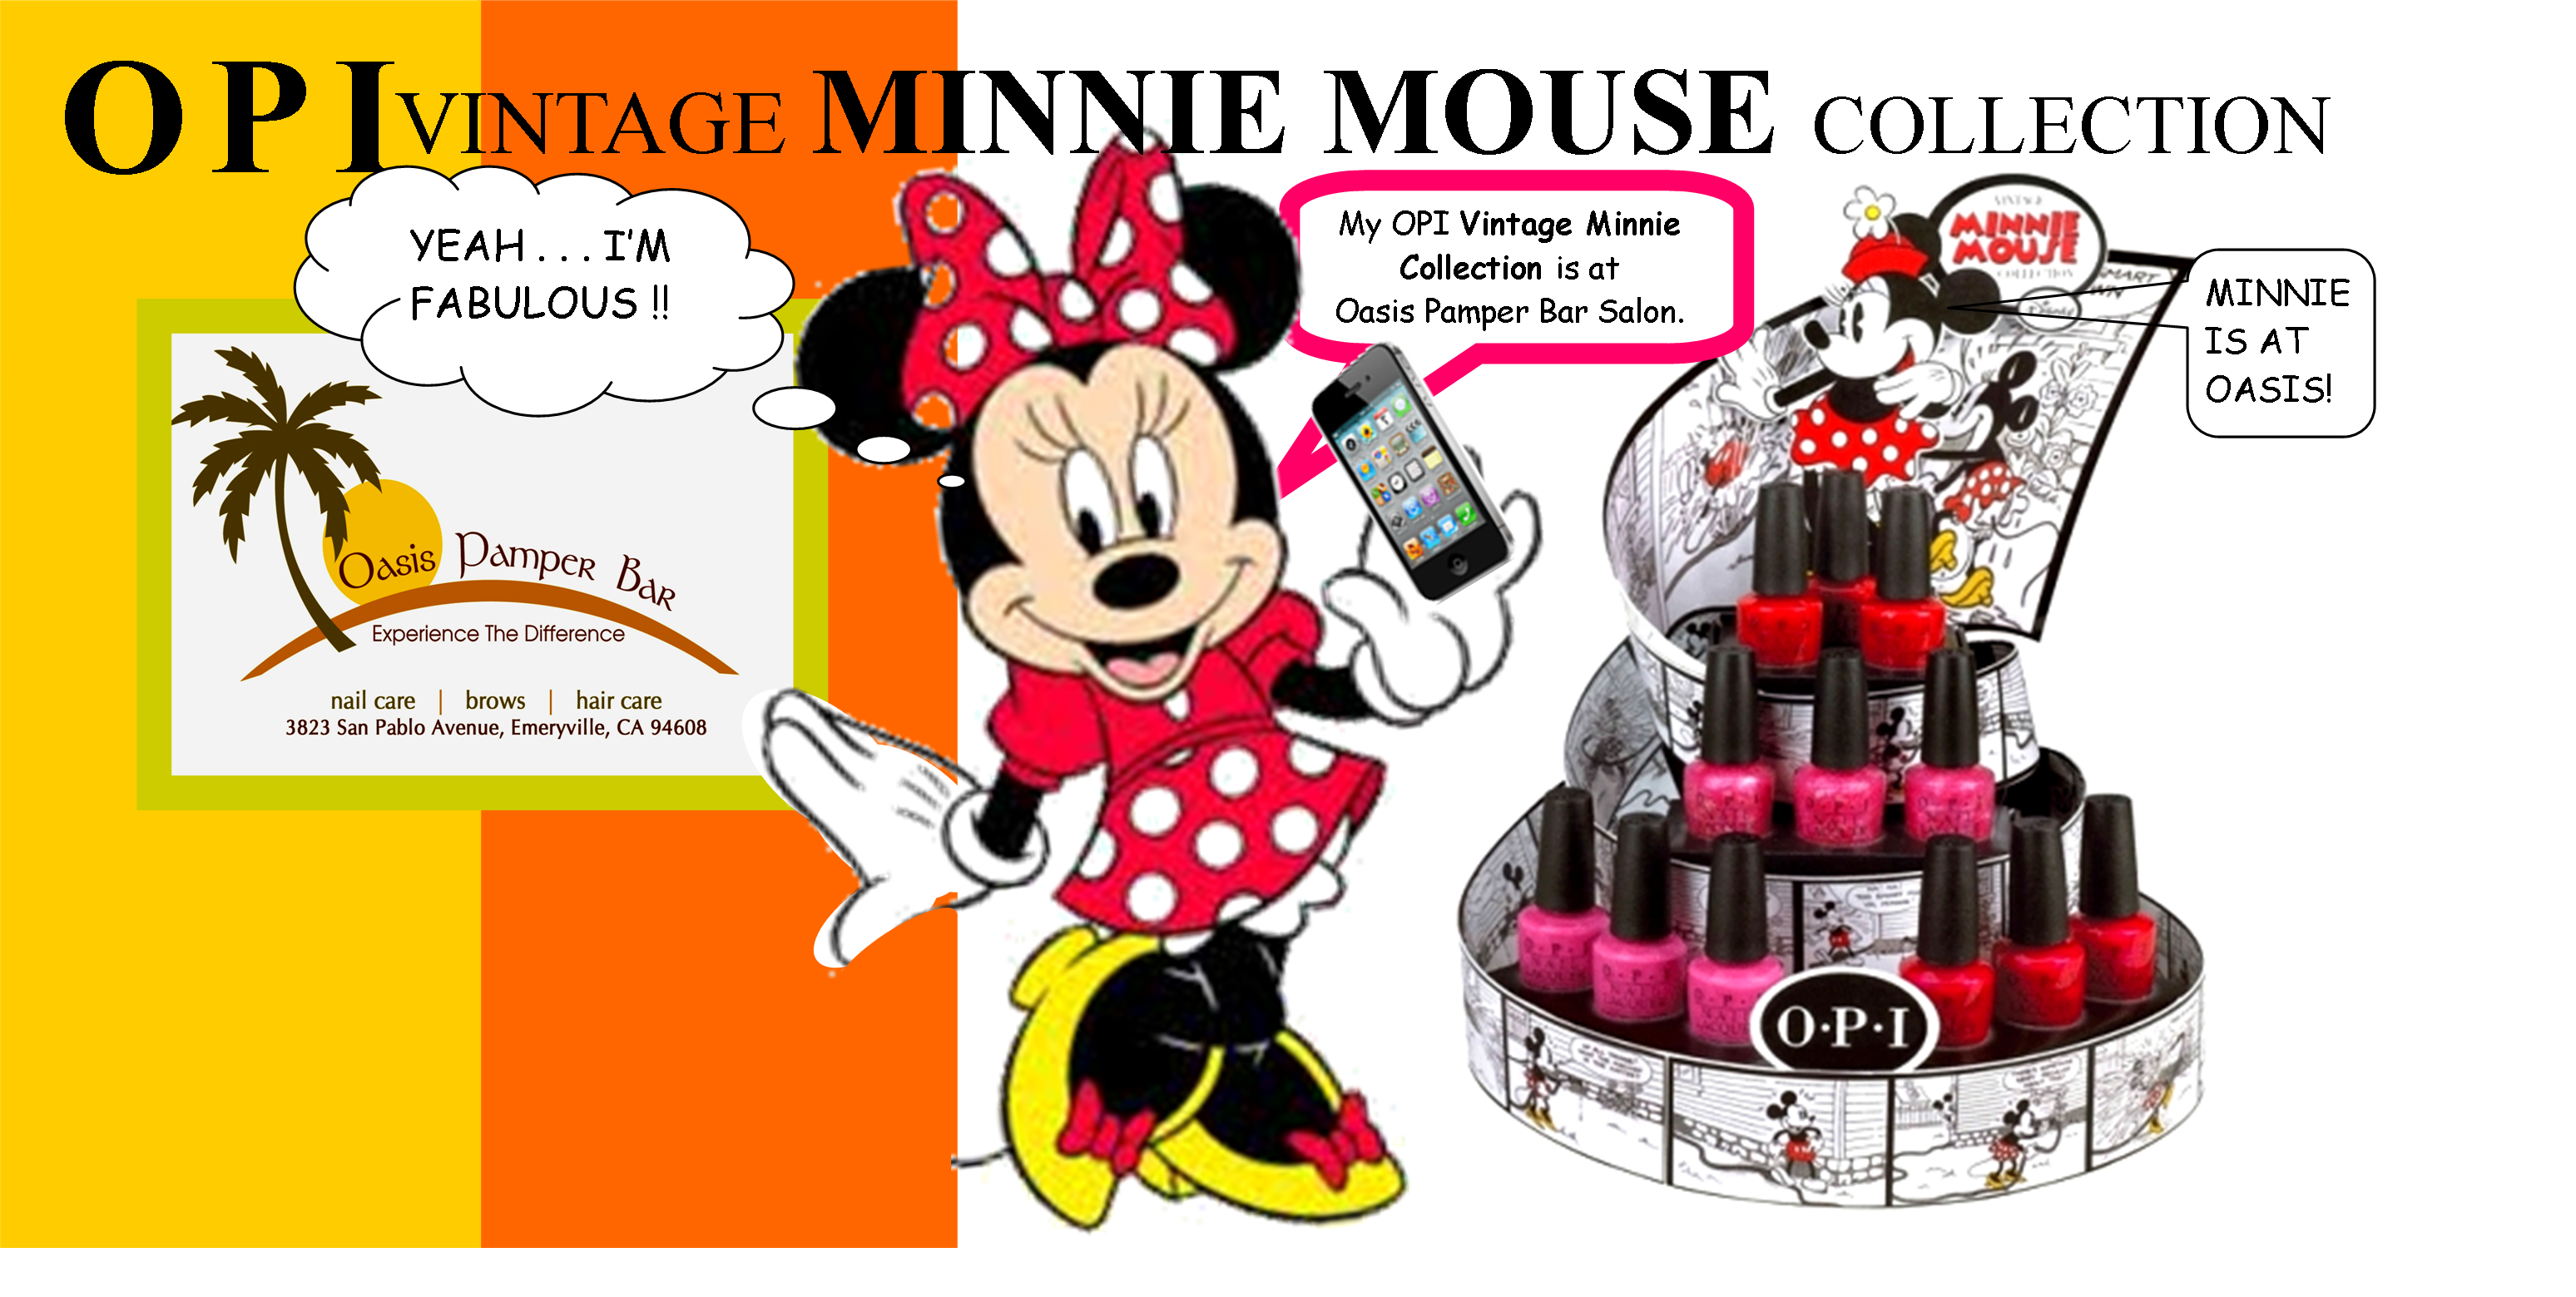 OPI's Vintage Minnie Mouse Polish Collection is now available at Oasis Pamper Bar Salon  from your nail professionals.